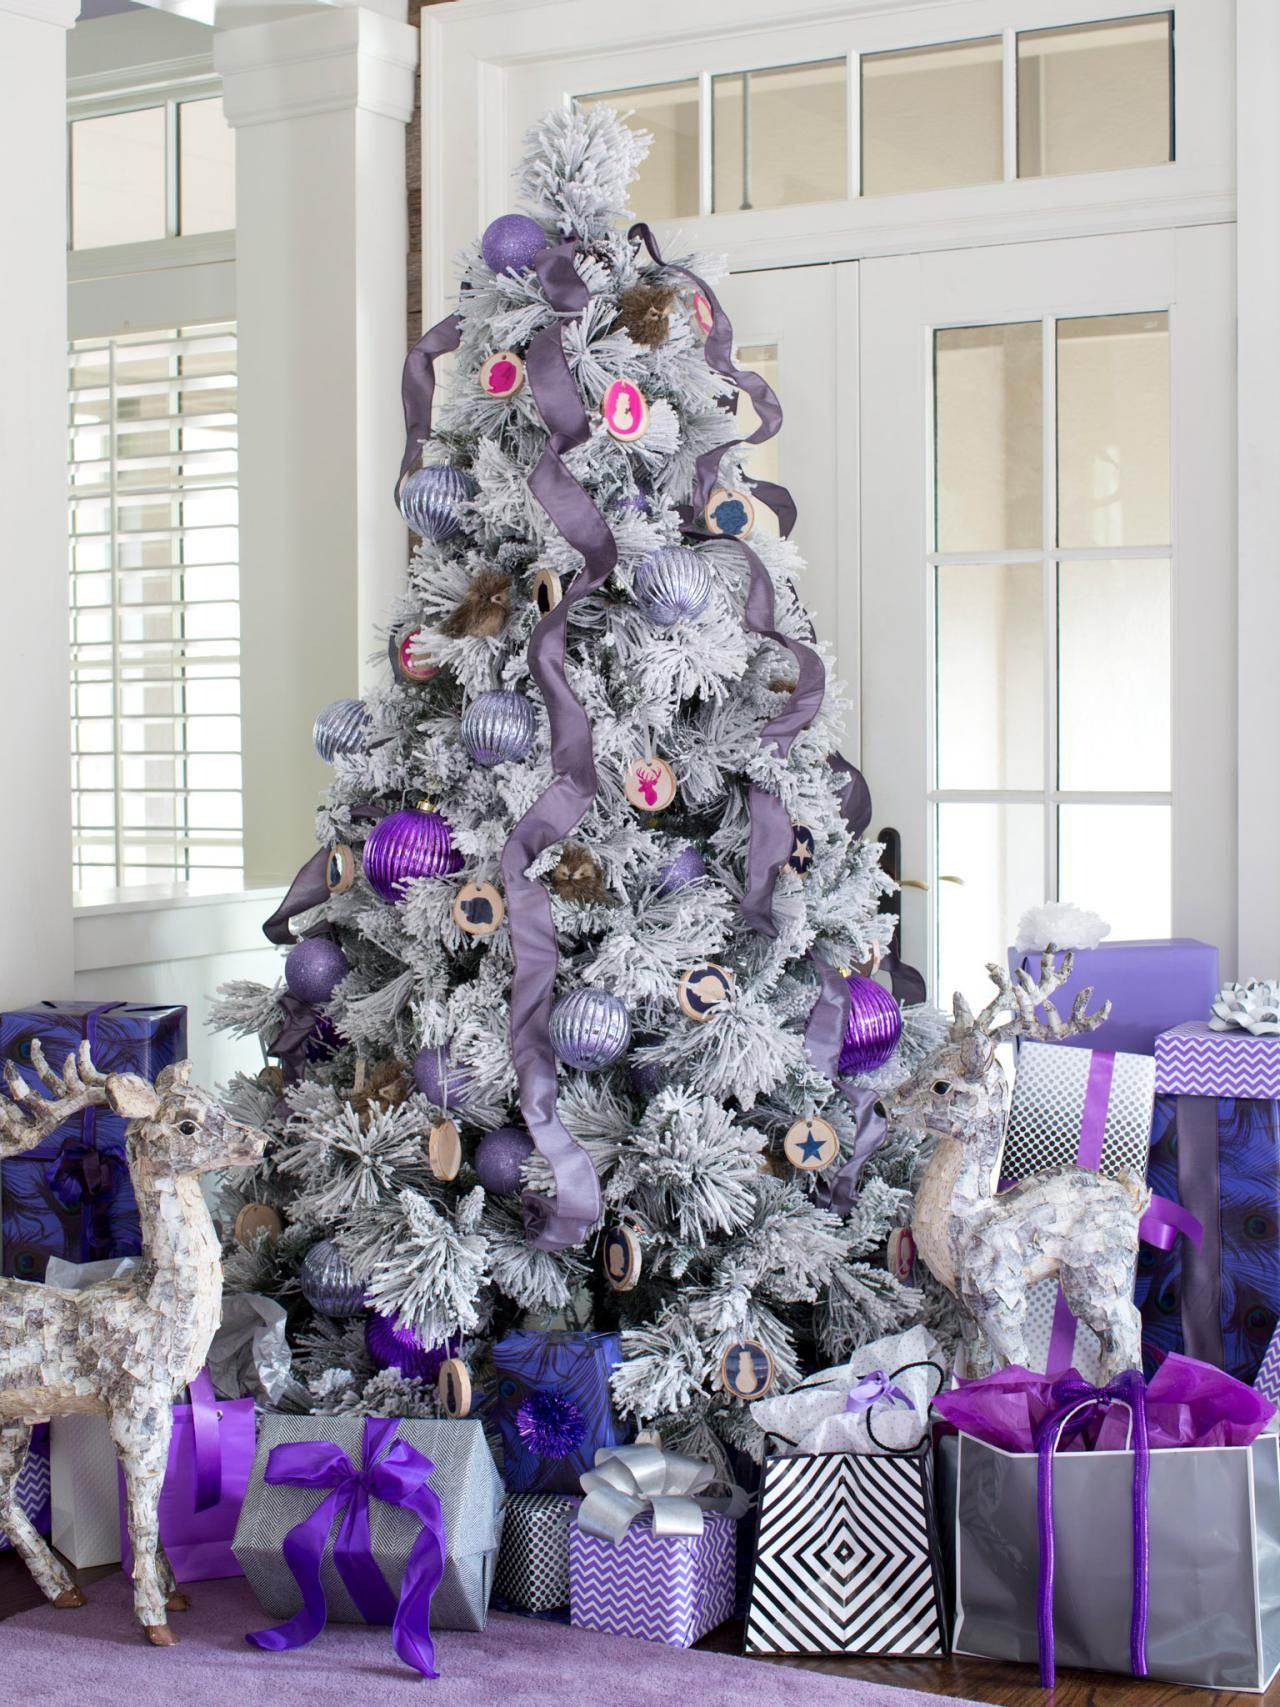 Color schemes for christmas trees - Modern Holiday Color Scheme White Christmas Treesxmas